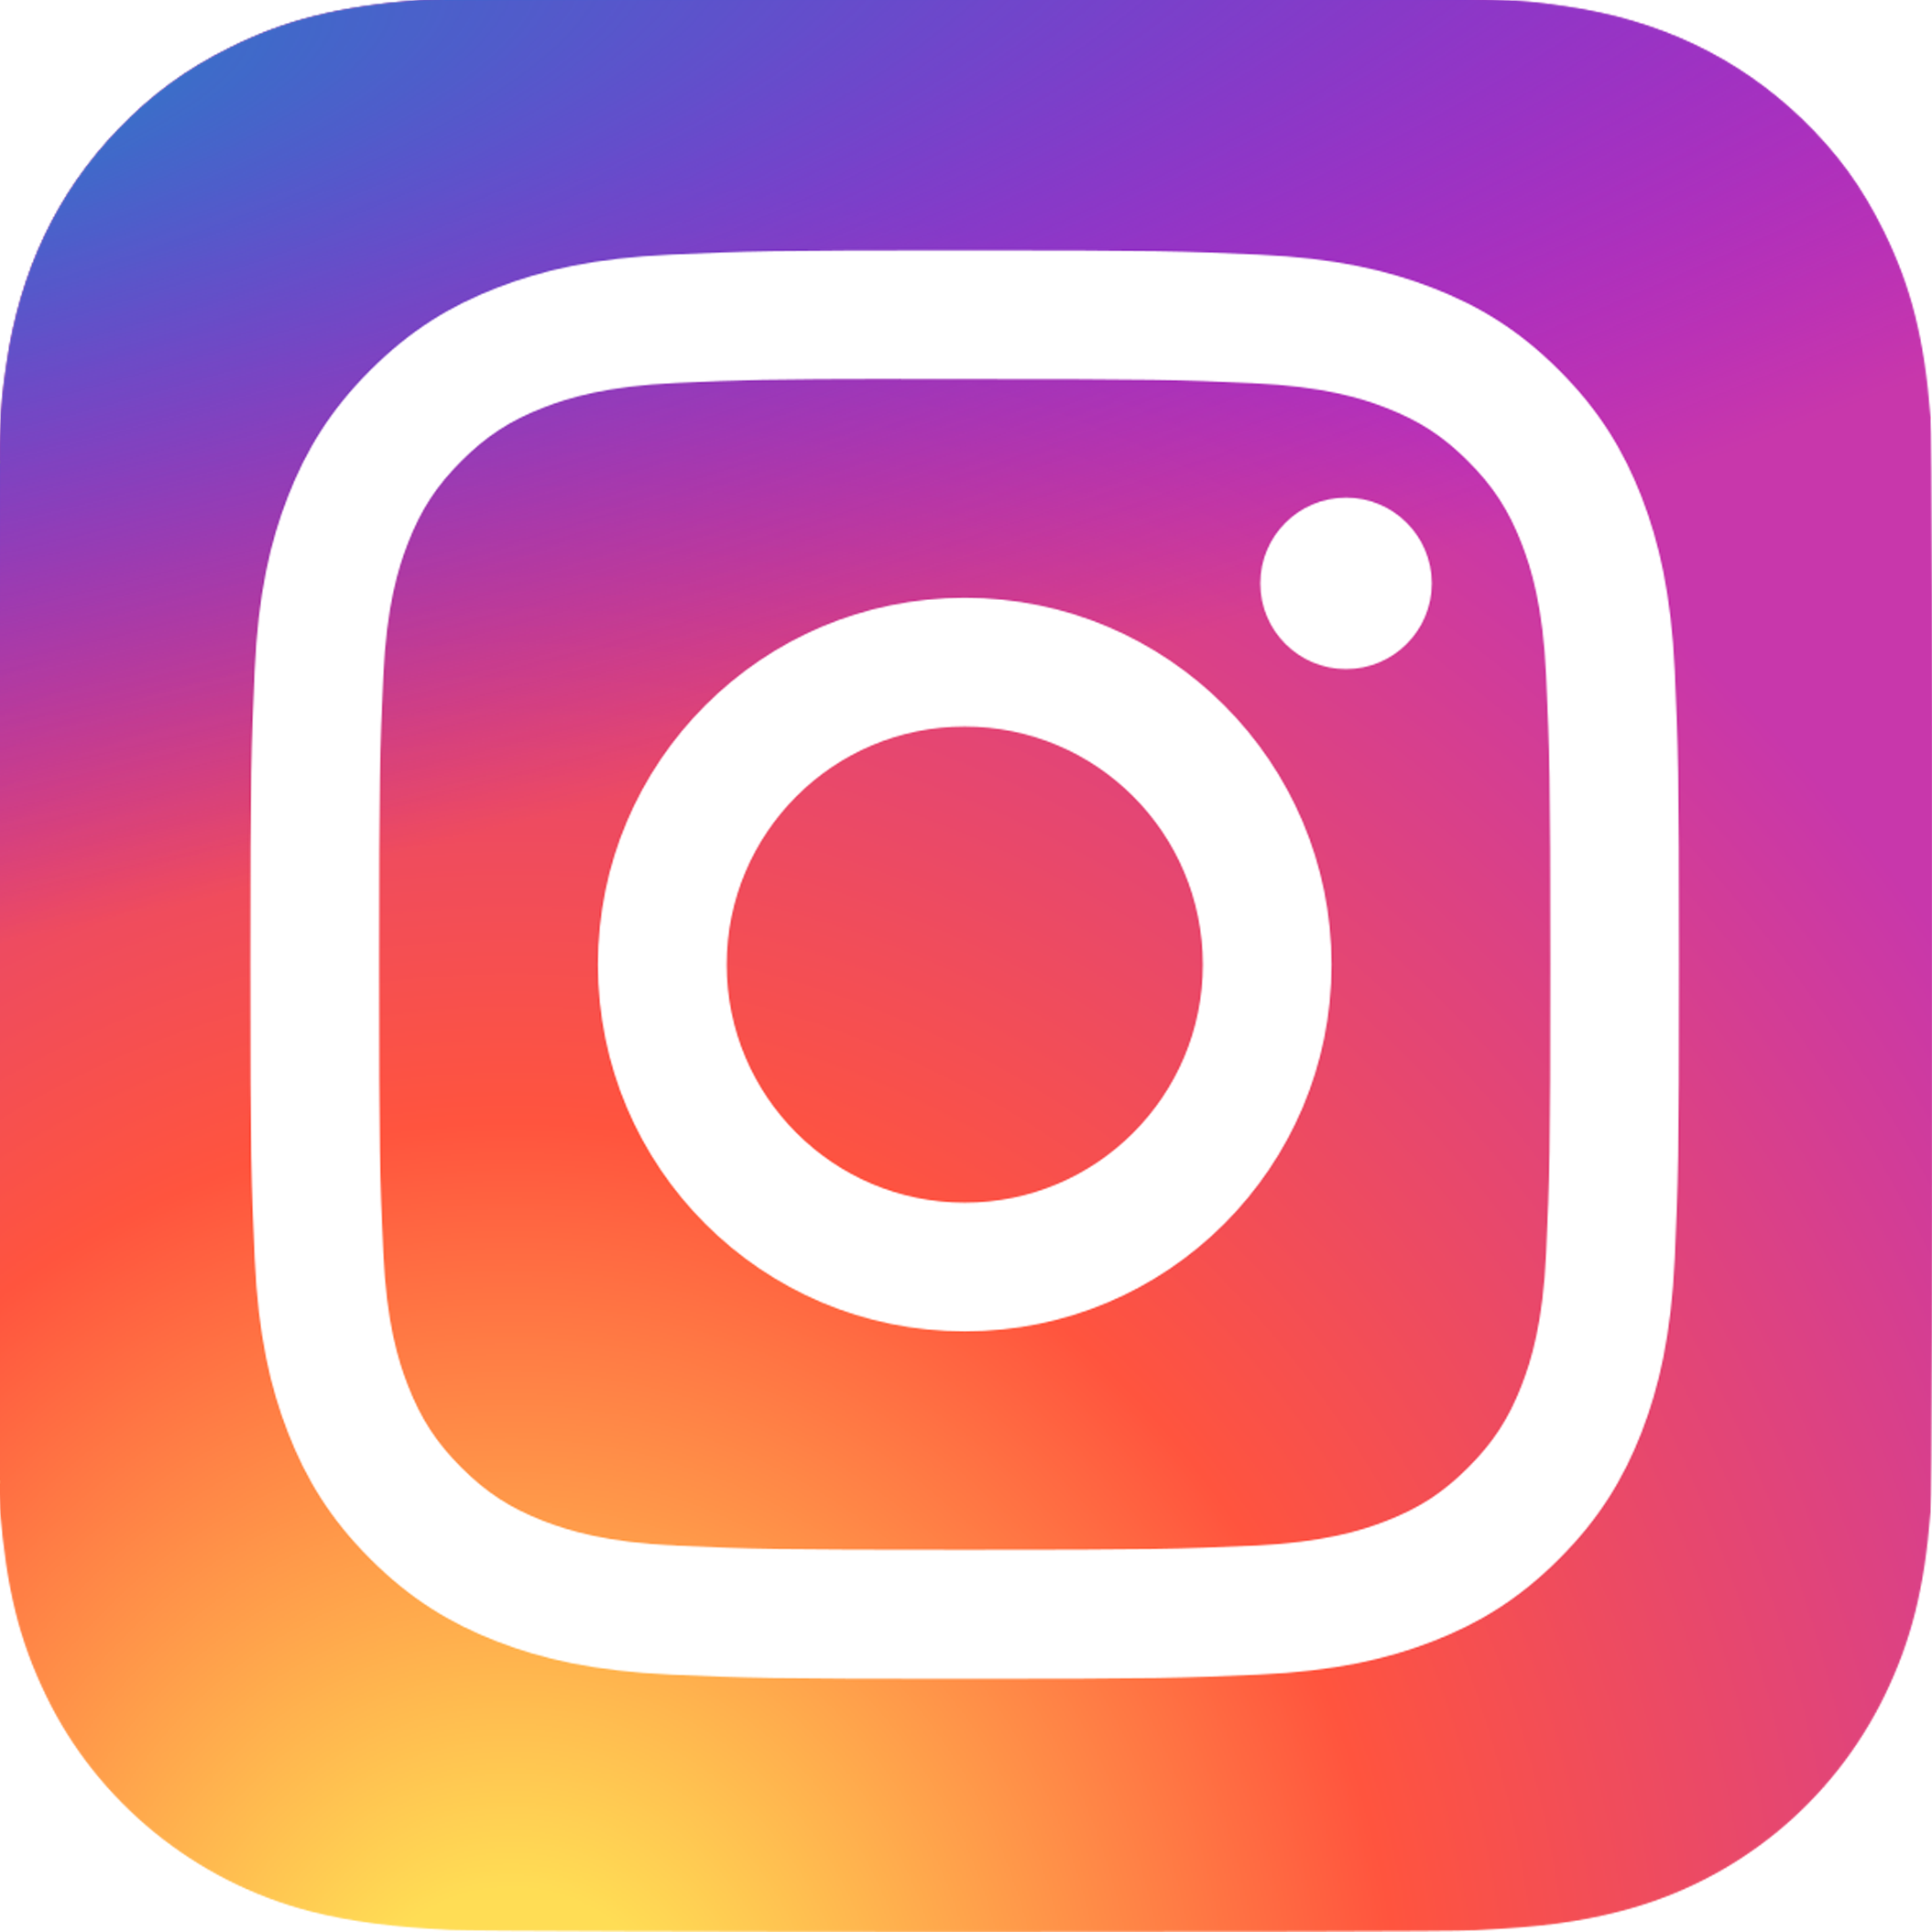 instagram icone png blanc